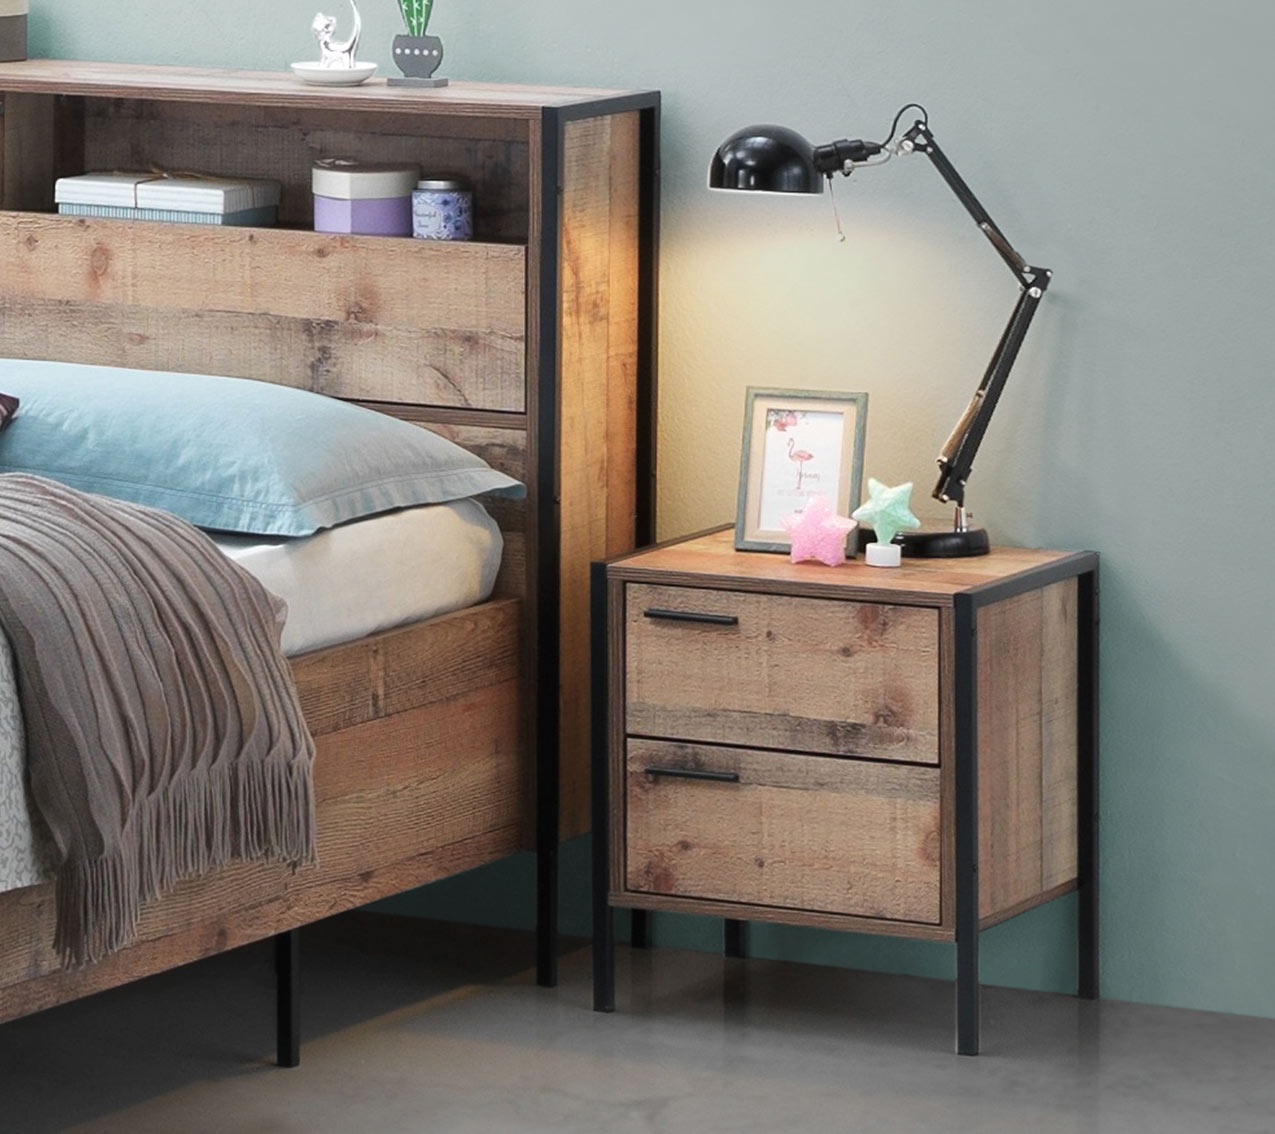 wooden bedside table and wooden bed